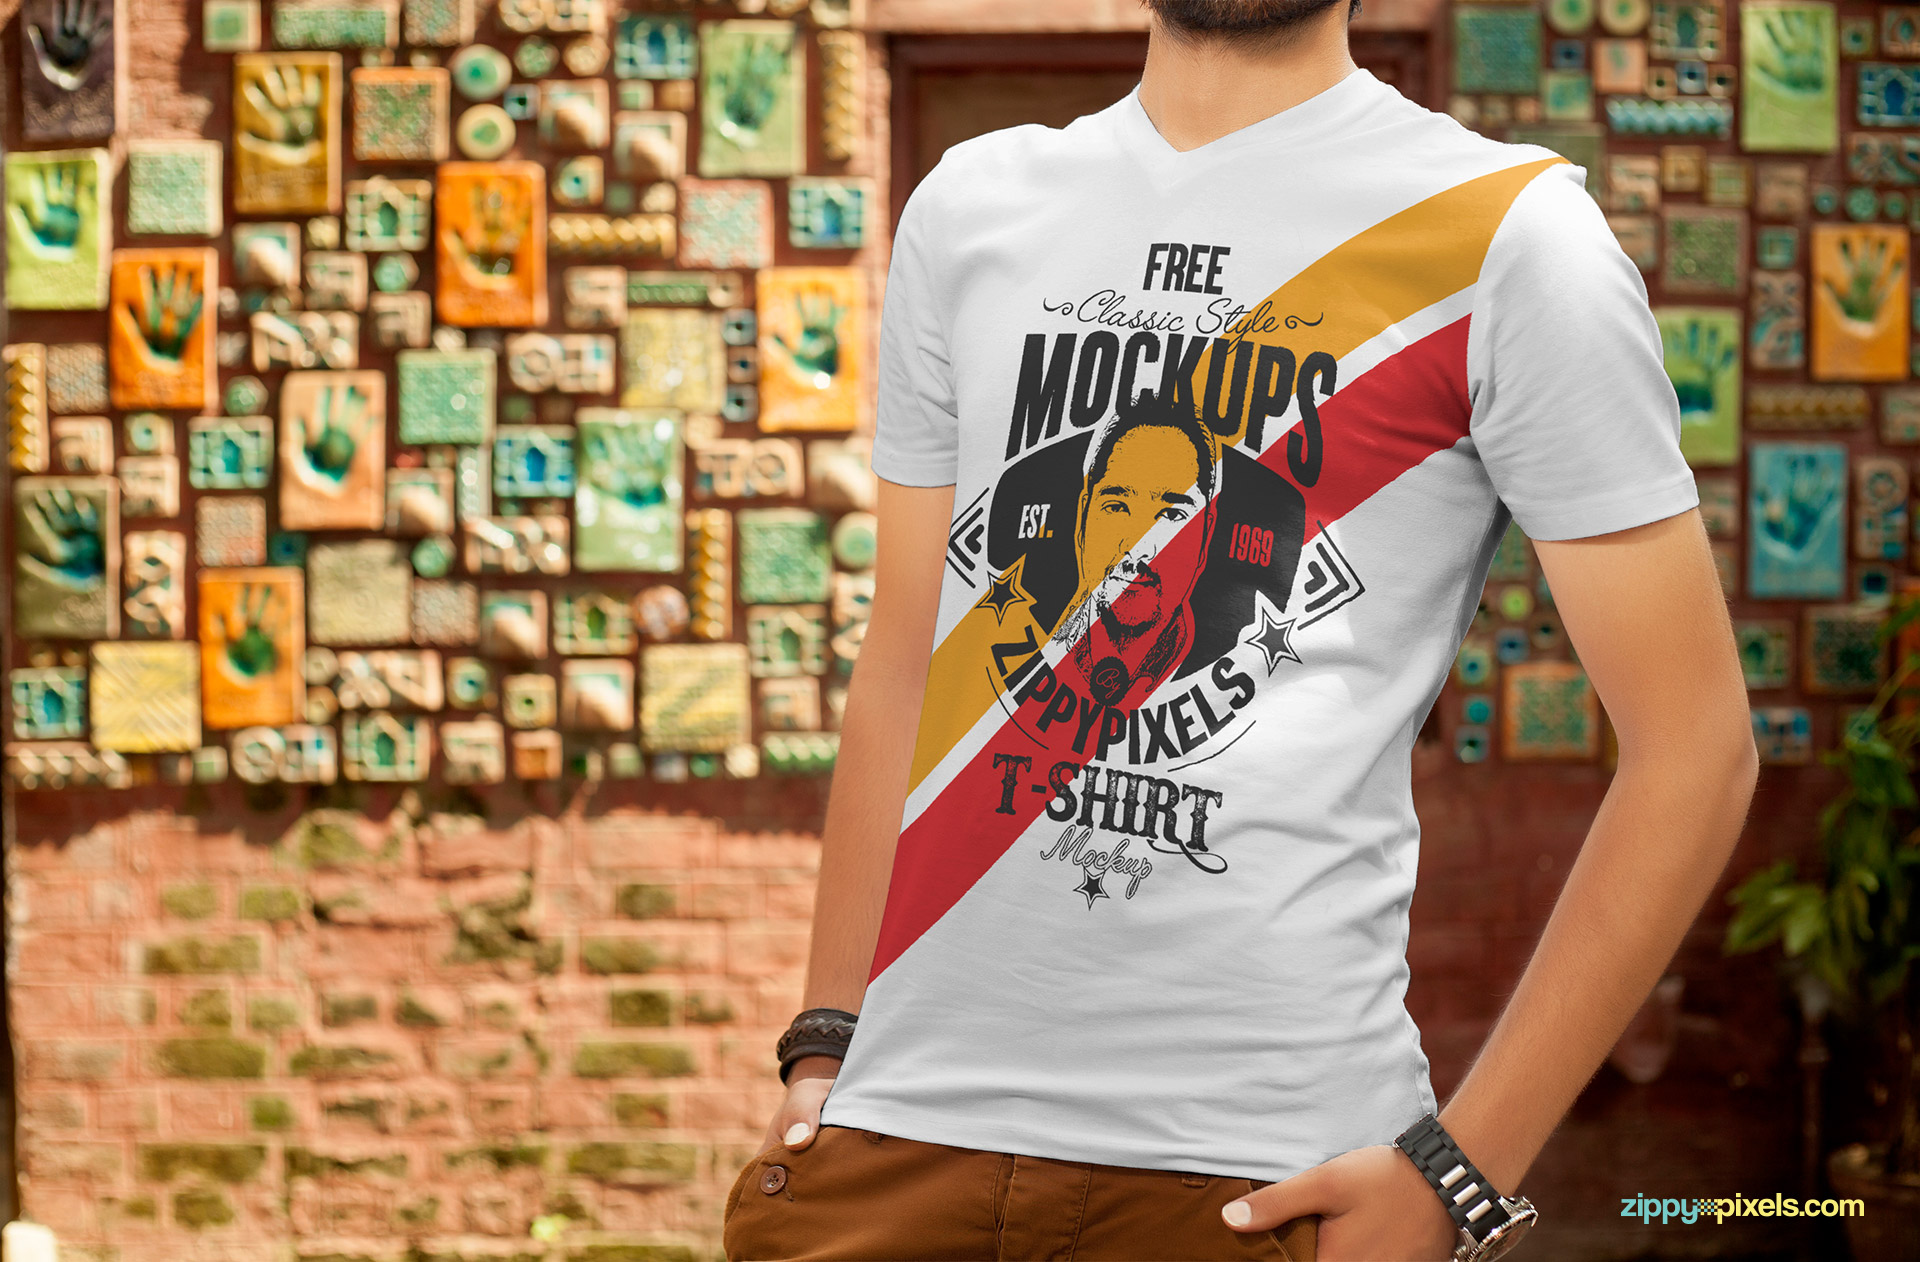 Free t-shirt design mockup with a professional model.